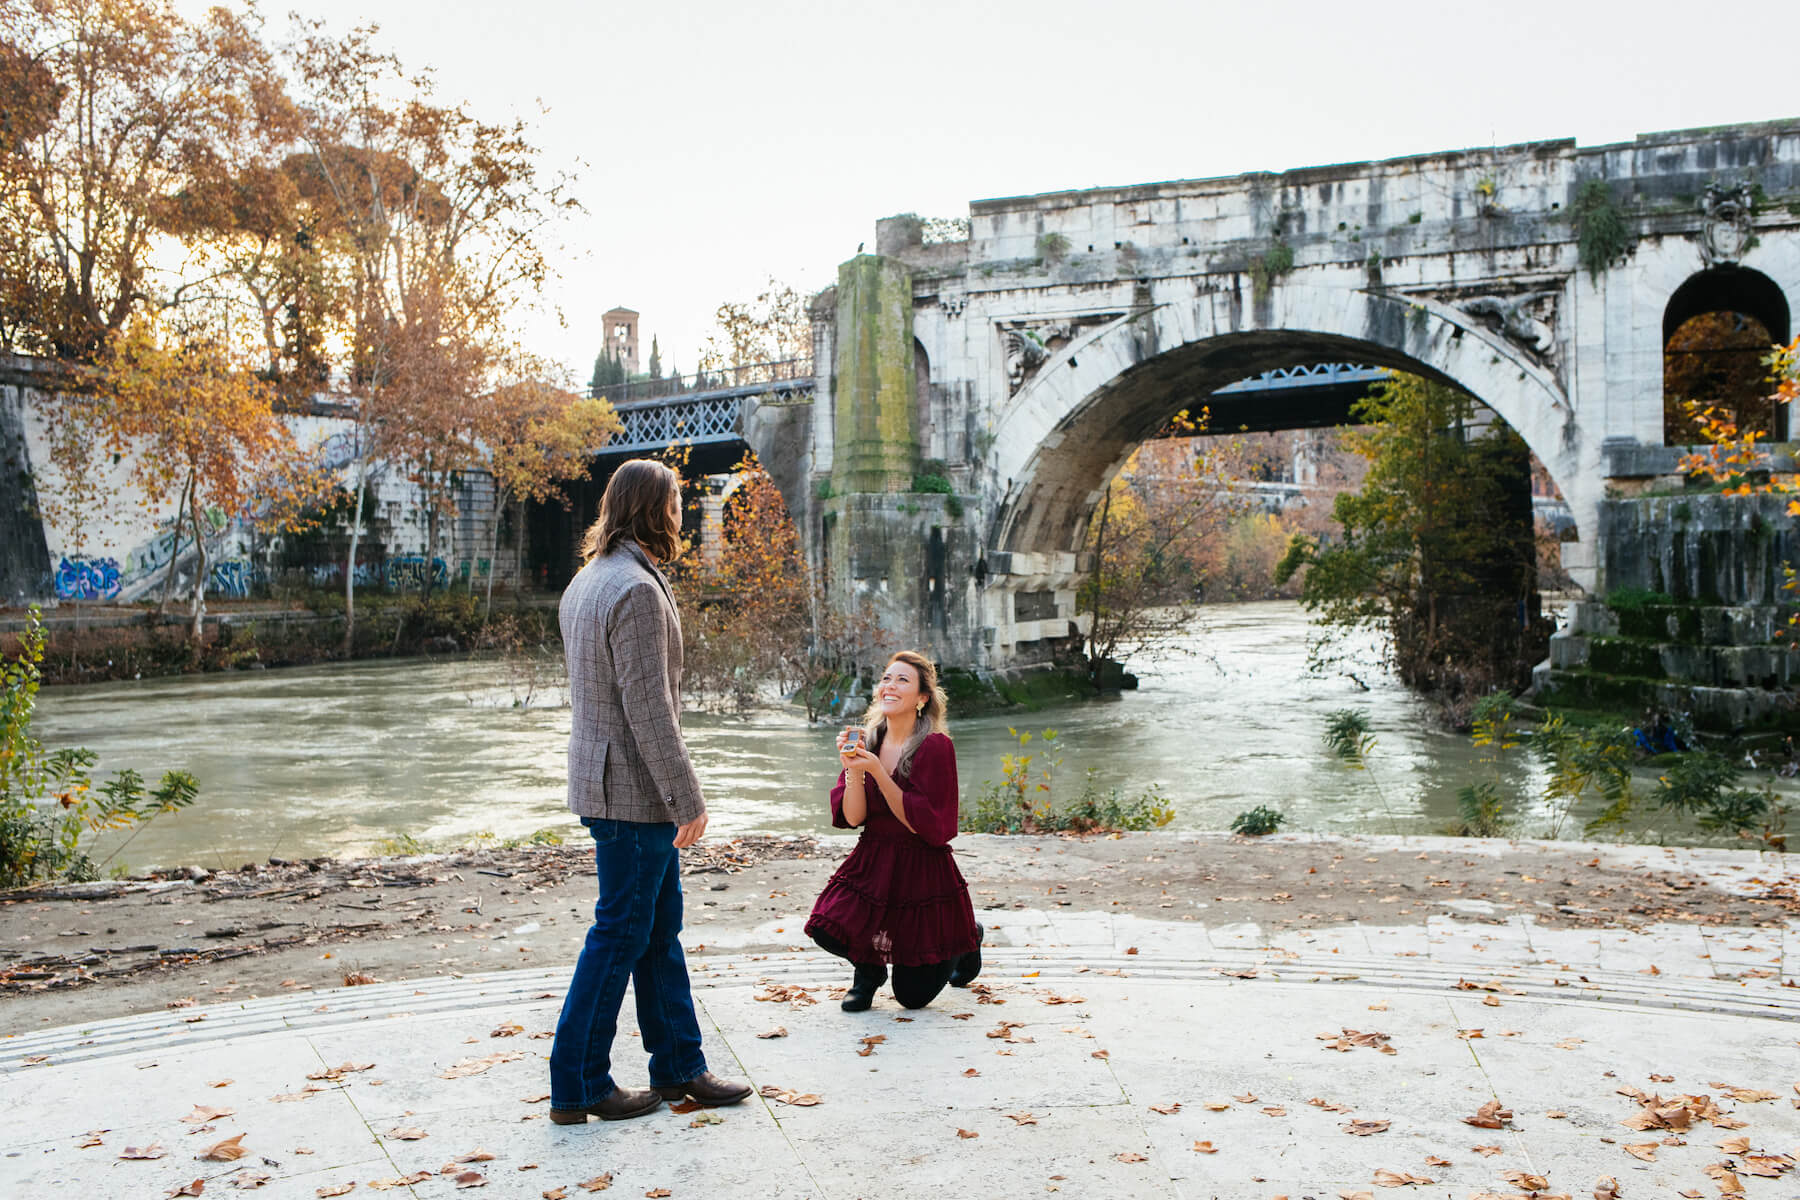 a woman is proposing to a man, she is on one knee in Rome, Italy